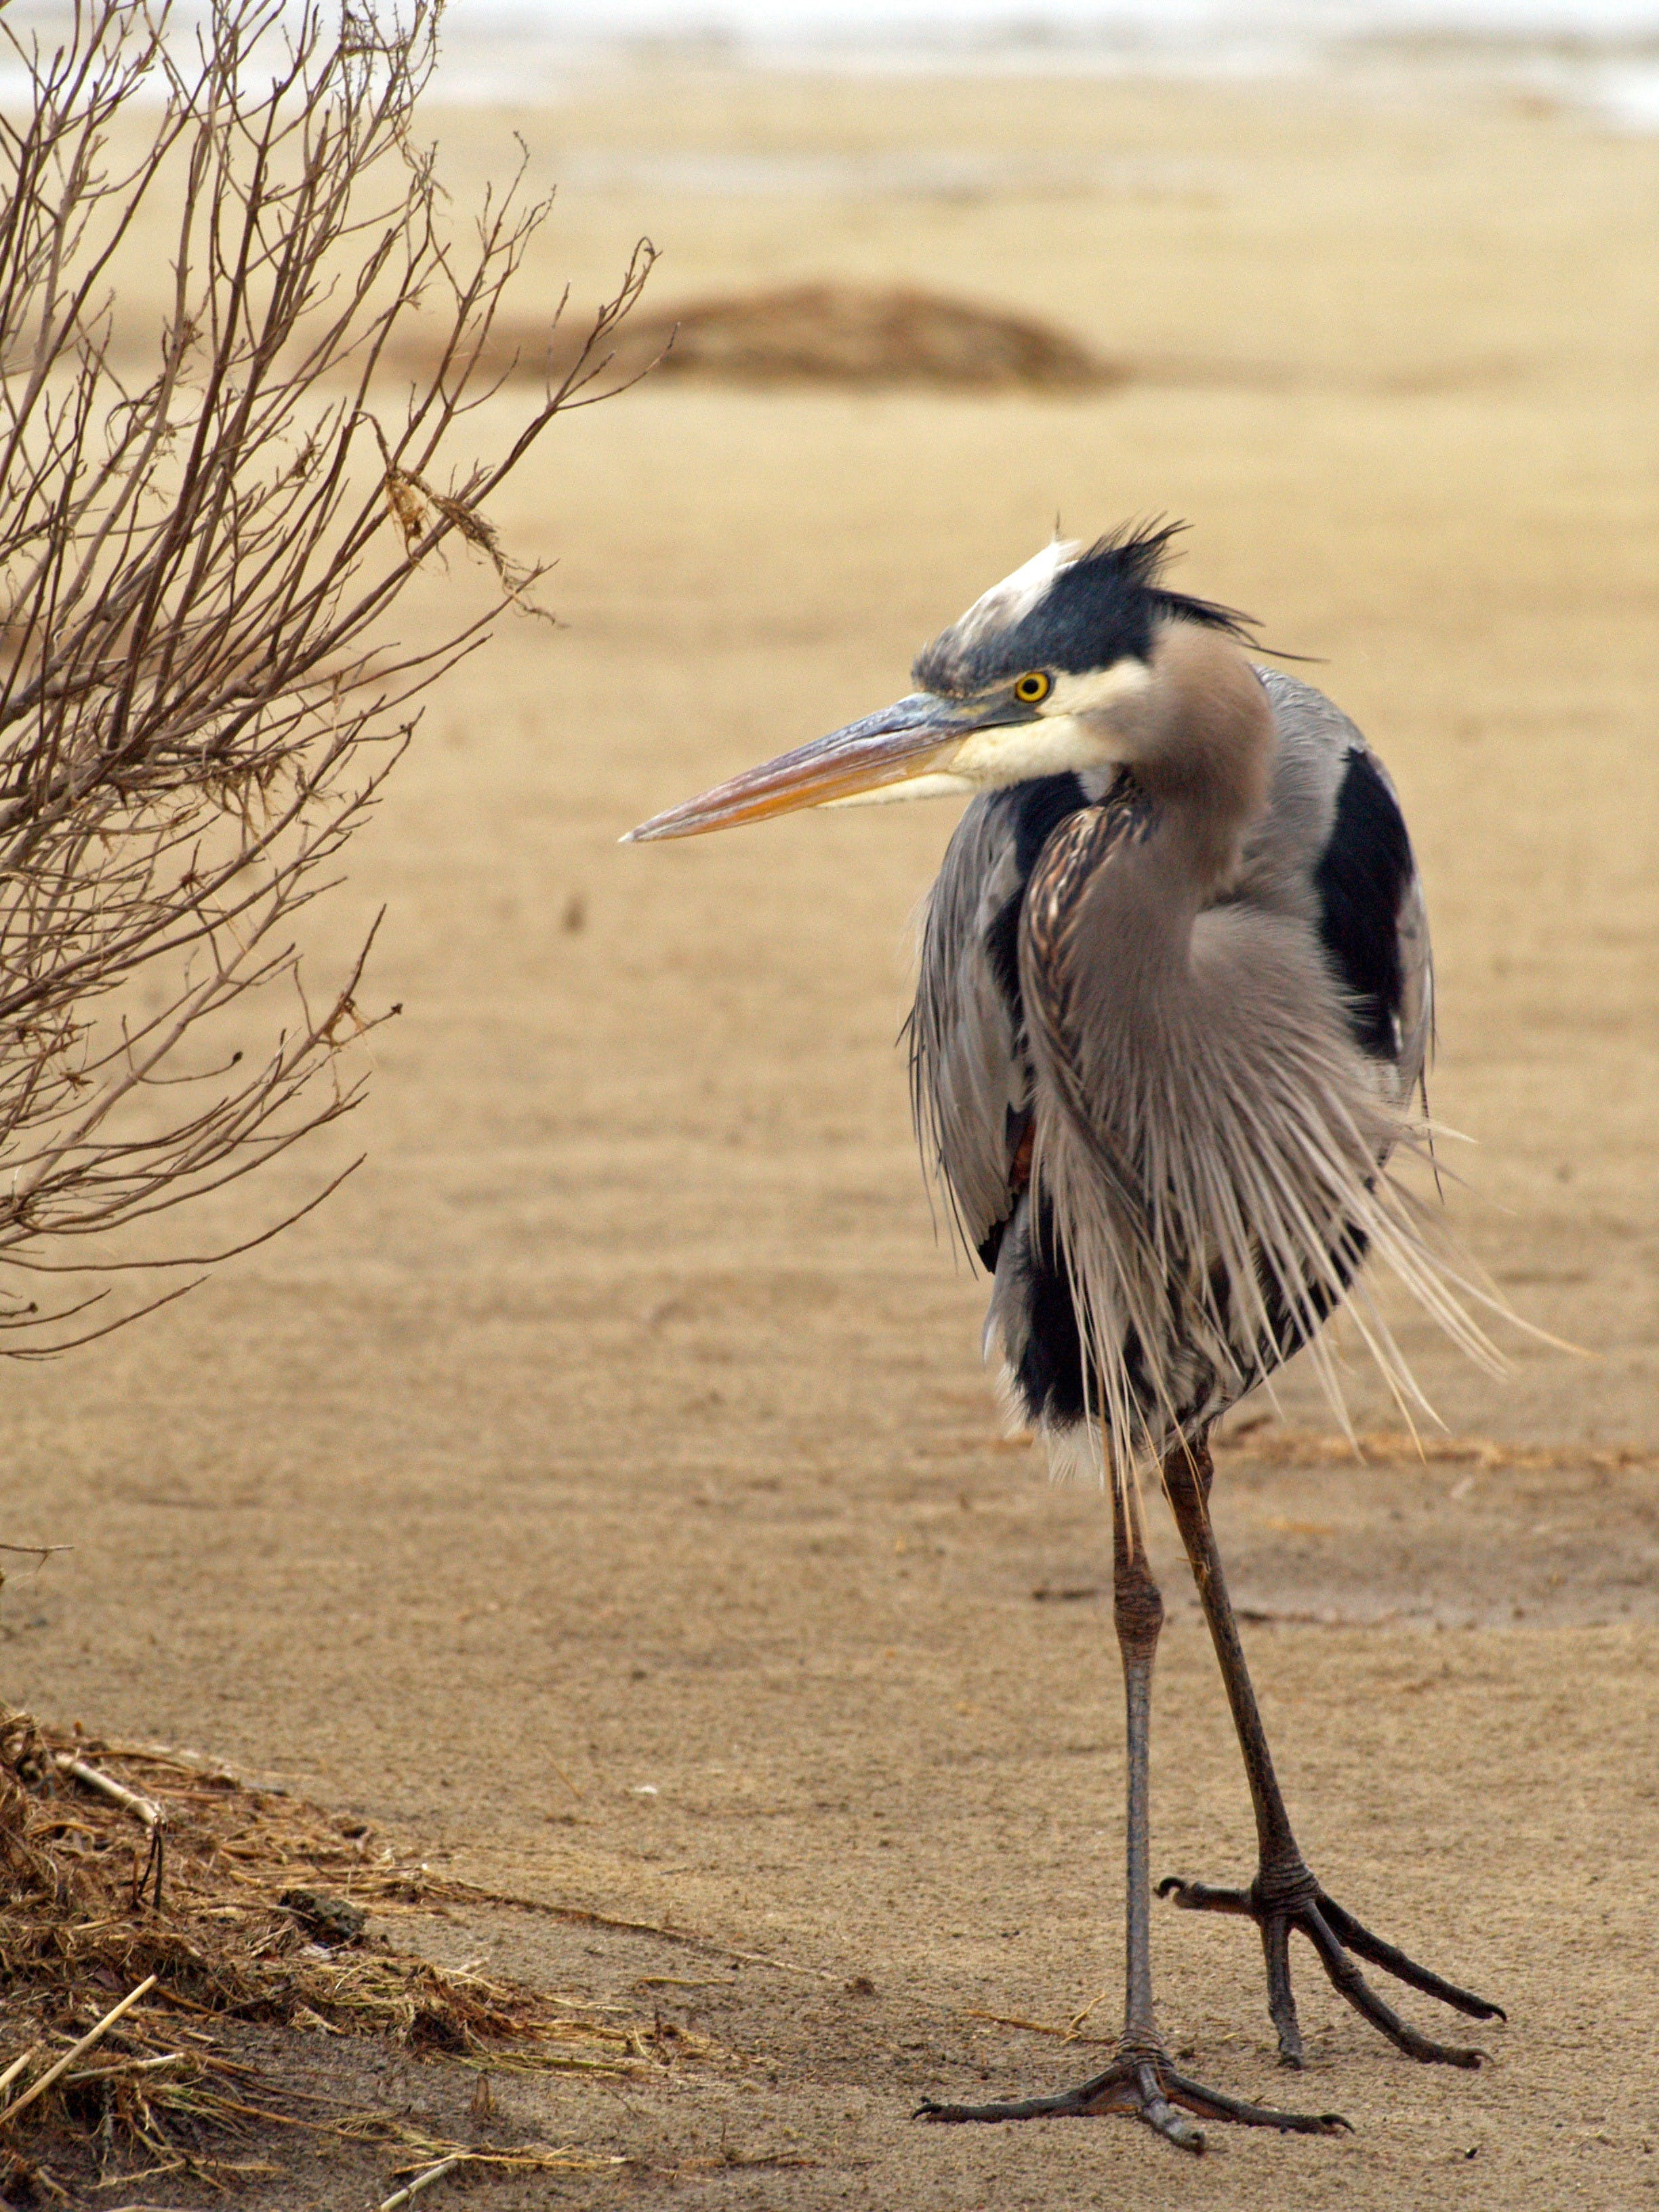 Free stock photo of bird, animal, animal photography, Blue heron